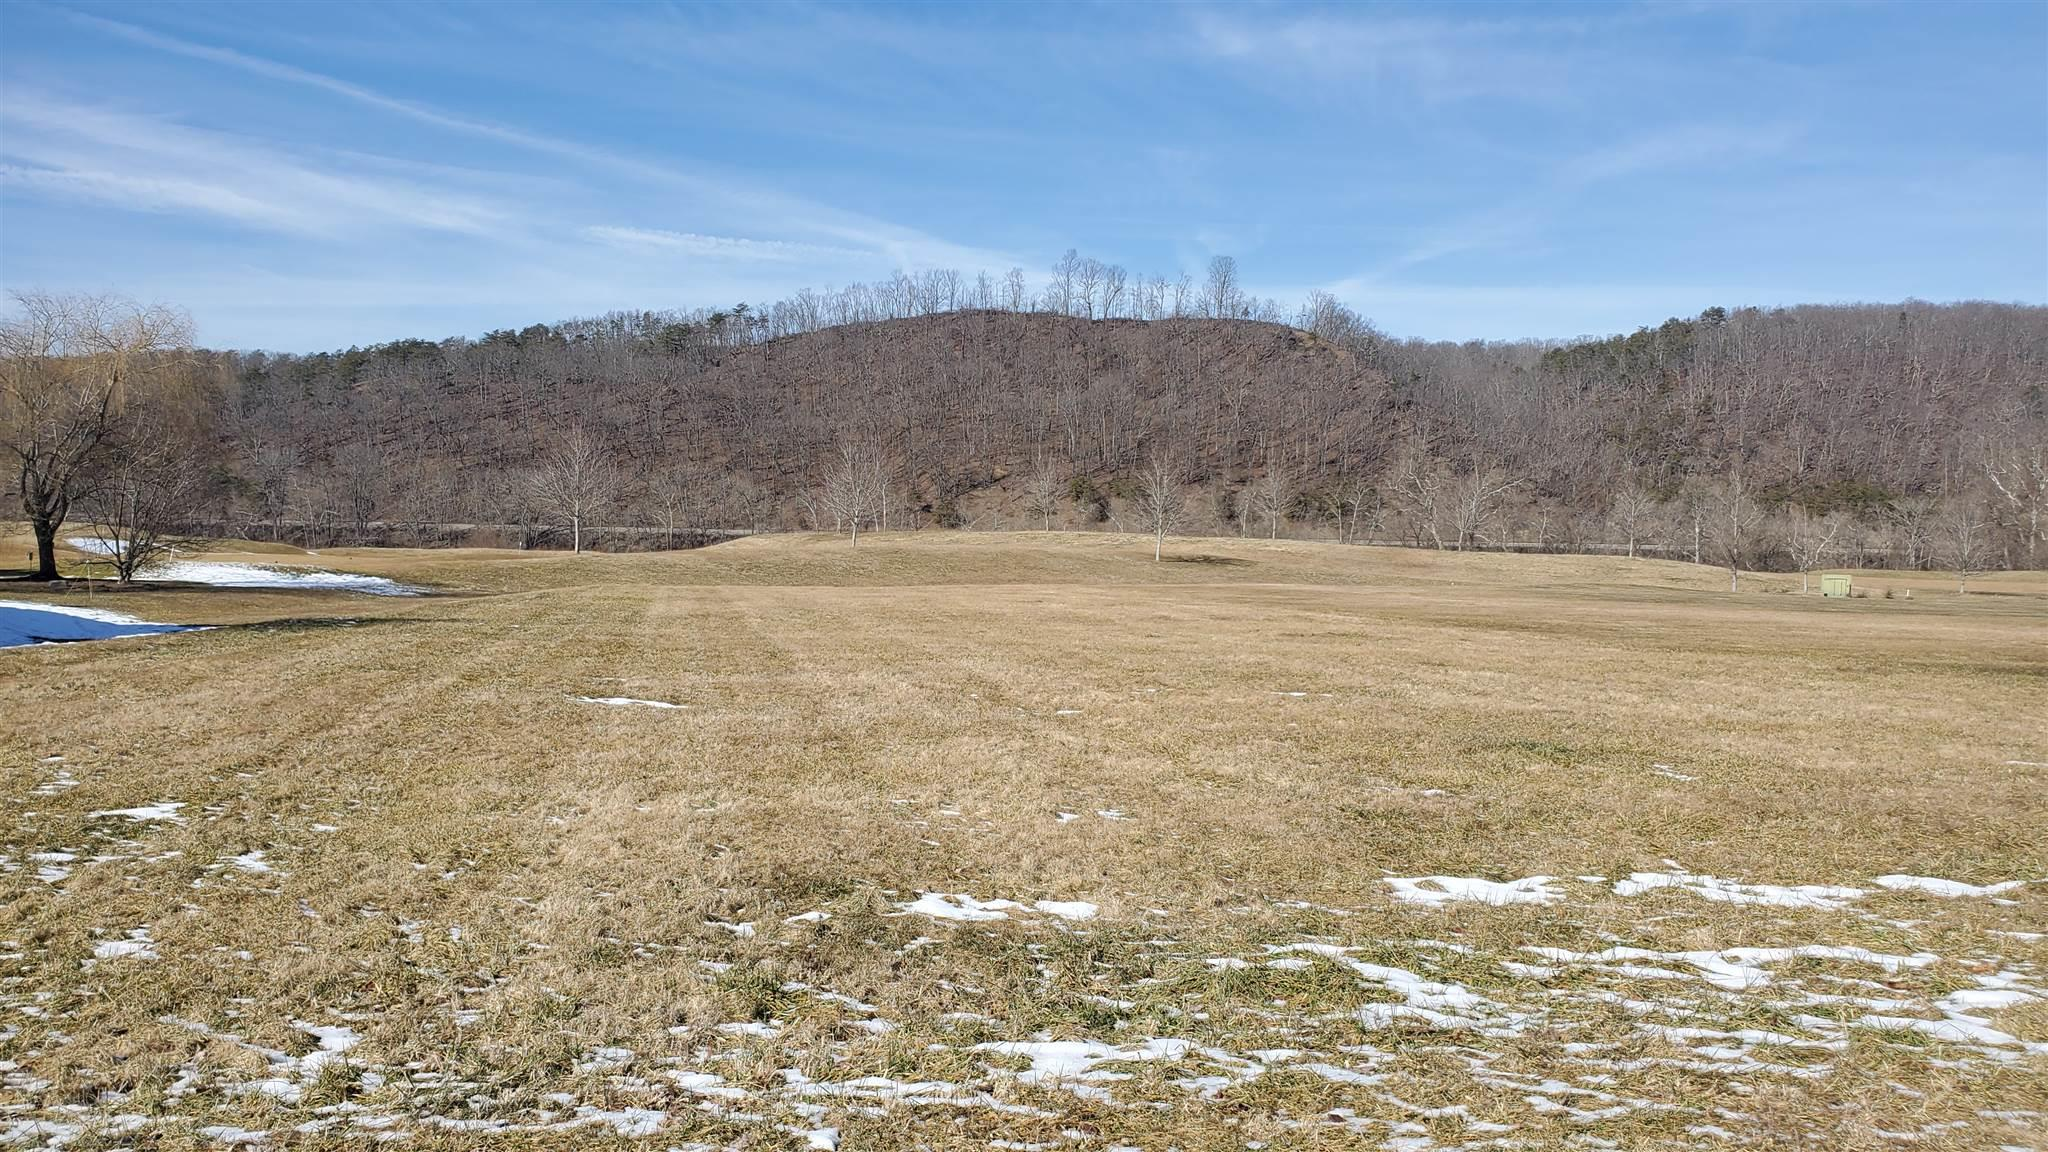 This is a rare opportunity to own an exclusive lot on the Golf Course . Come built your dream home on the 7th Tee Box and have beautiful views of the New River and Blue Ridge Mountains. HOA dues include pool membership